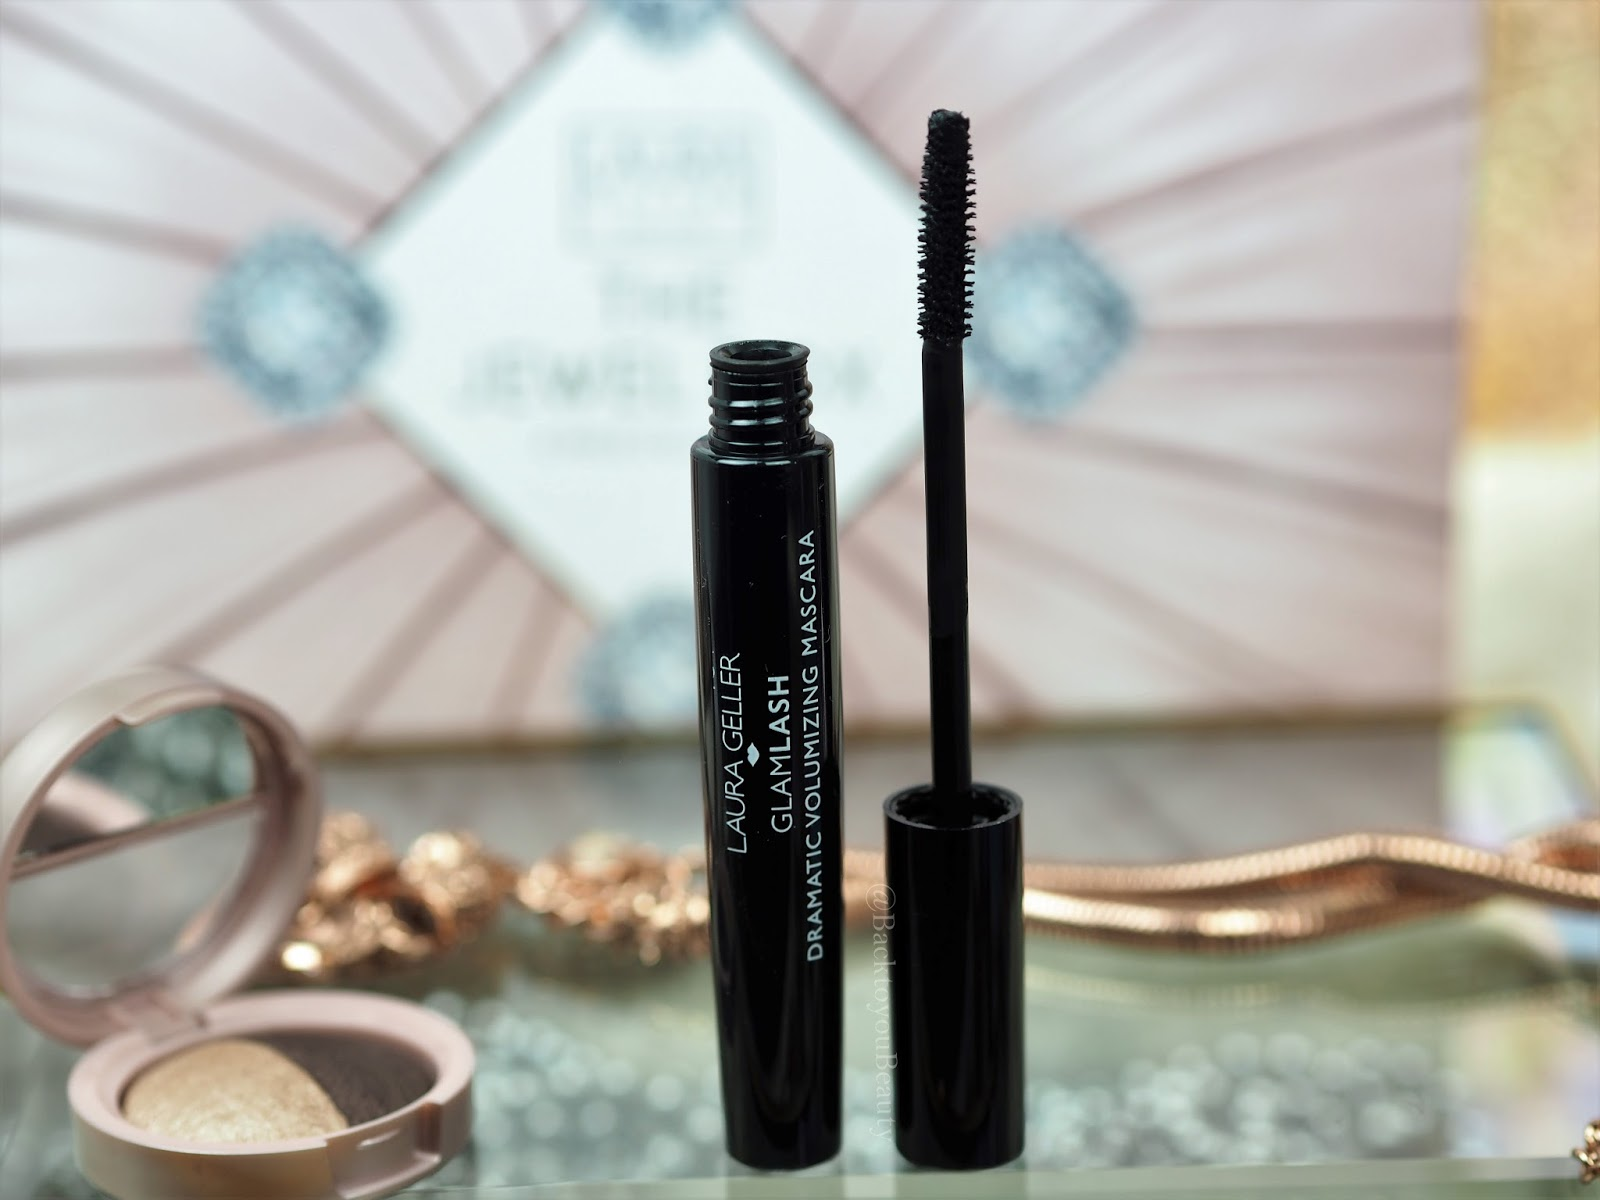 Laura Geller Glamlash Mascara